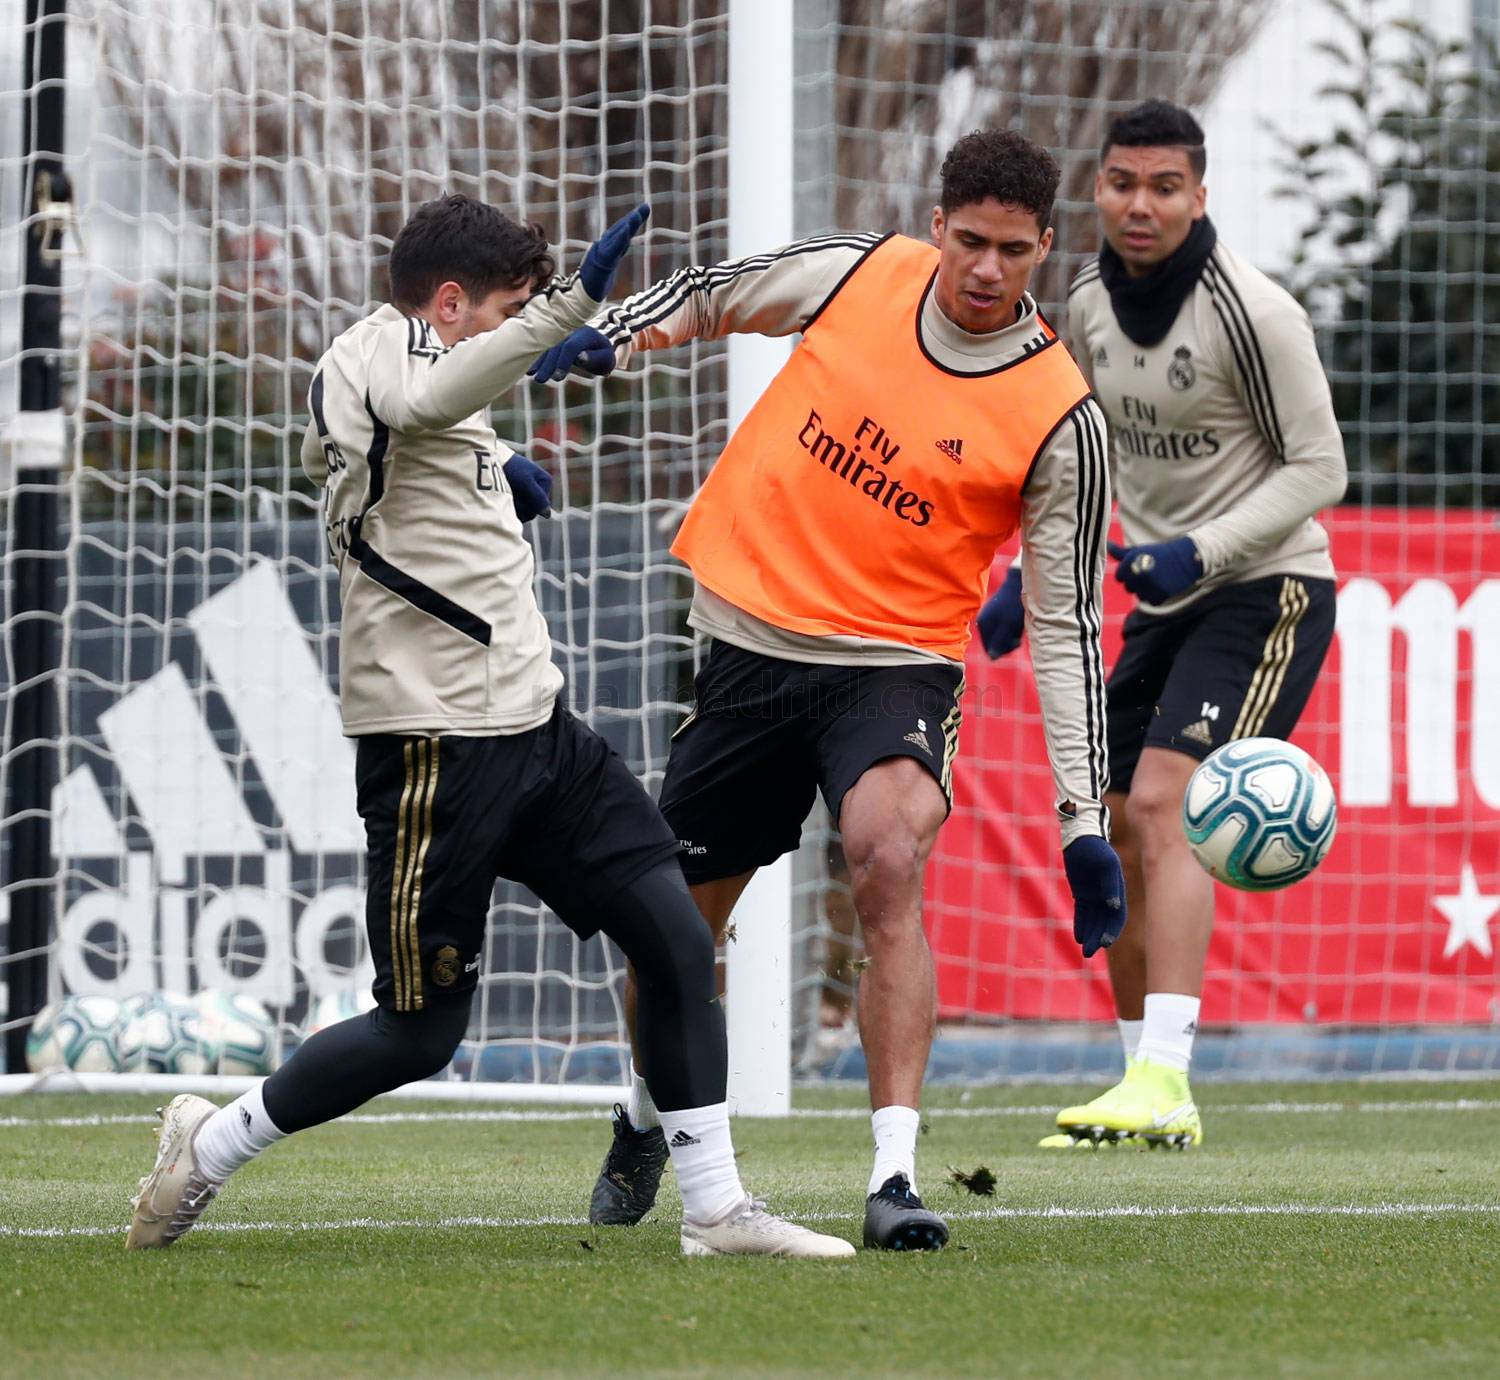 Real Madrid - Entrenamiento del Real Madrid  - 16-01-2020